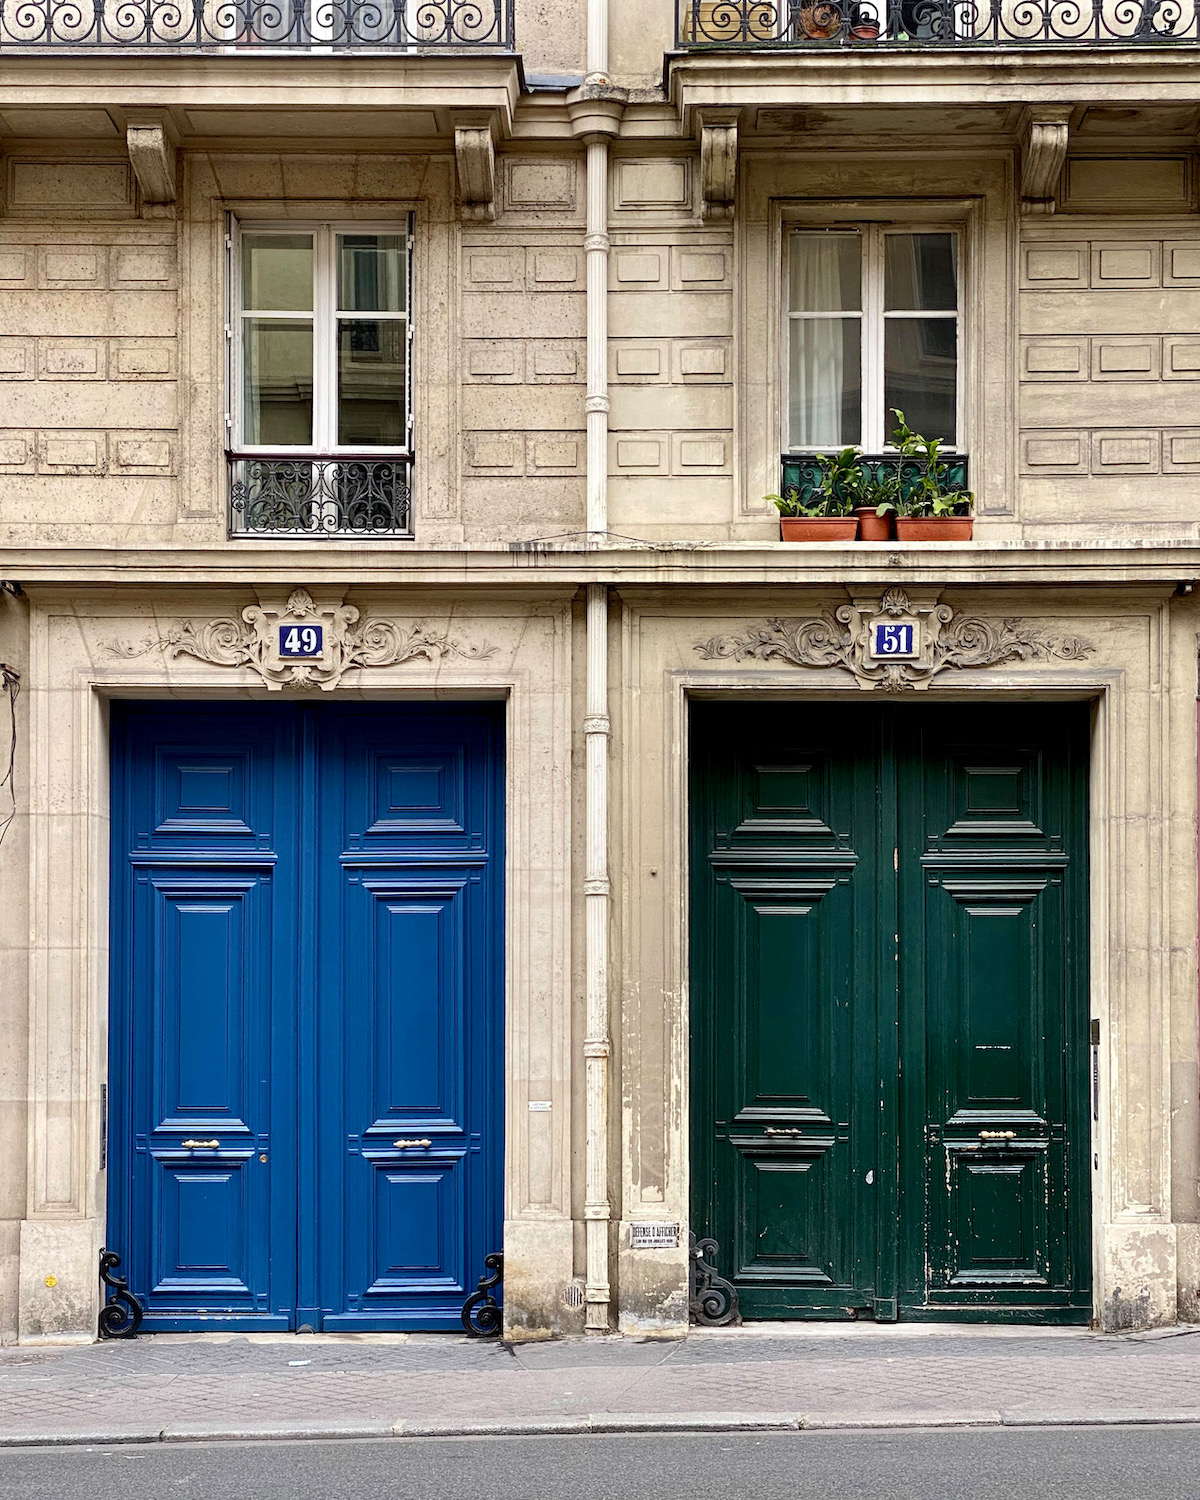 blue and green doors in paris. five friday finds from france featuring the ducasse-sur-seine dinner cruise